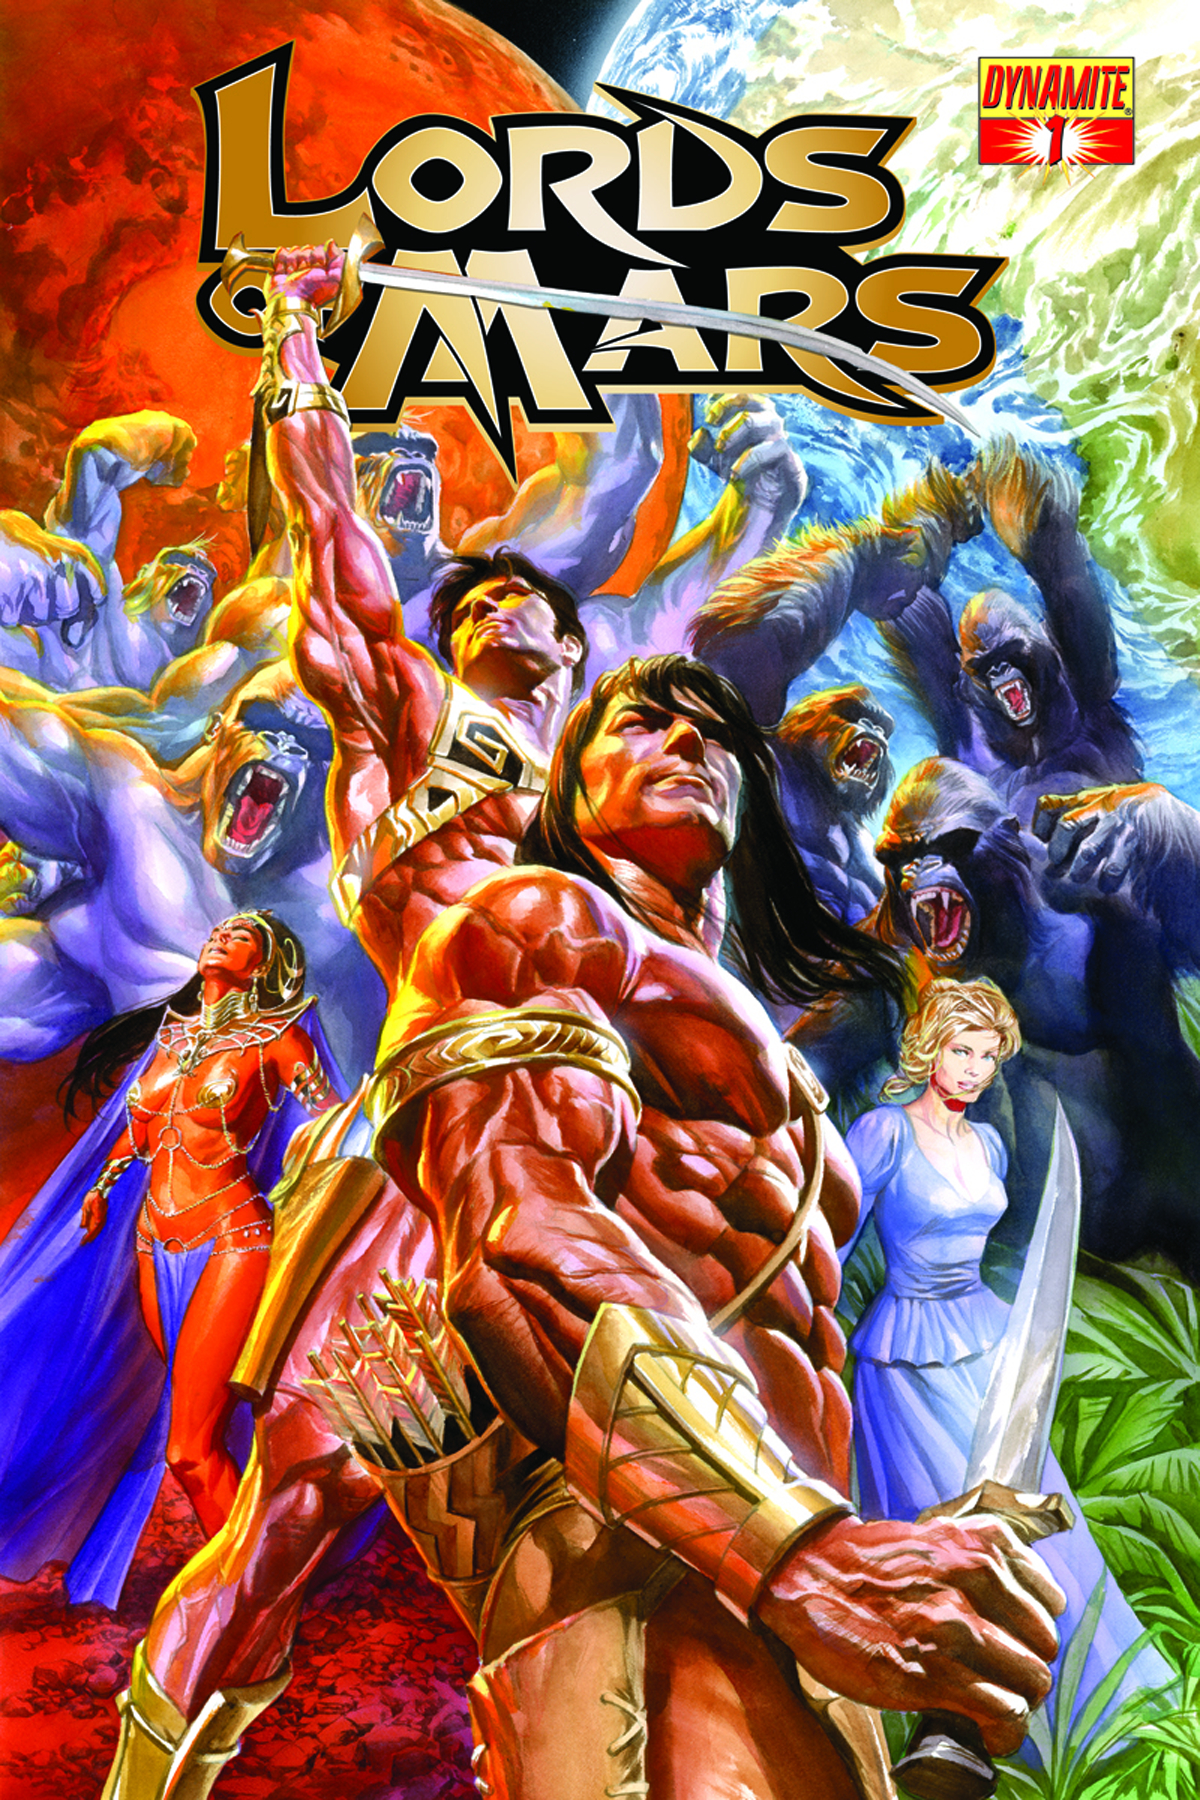 LORDS OF MARS #1 (OF 6) ROSS CVR